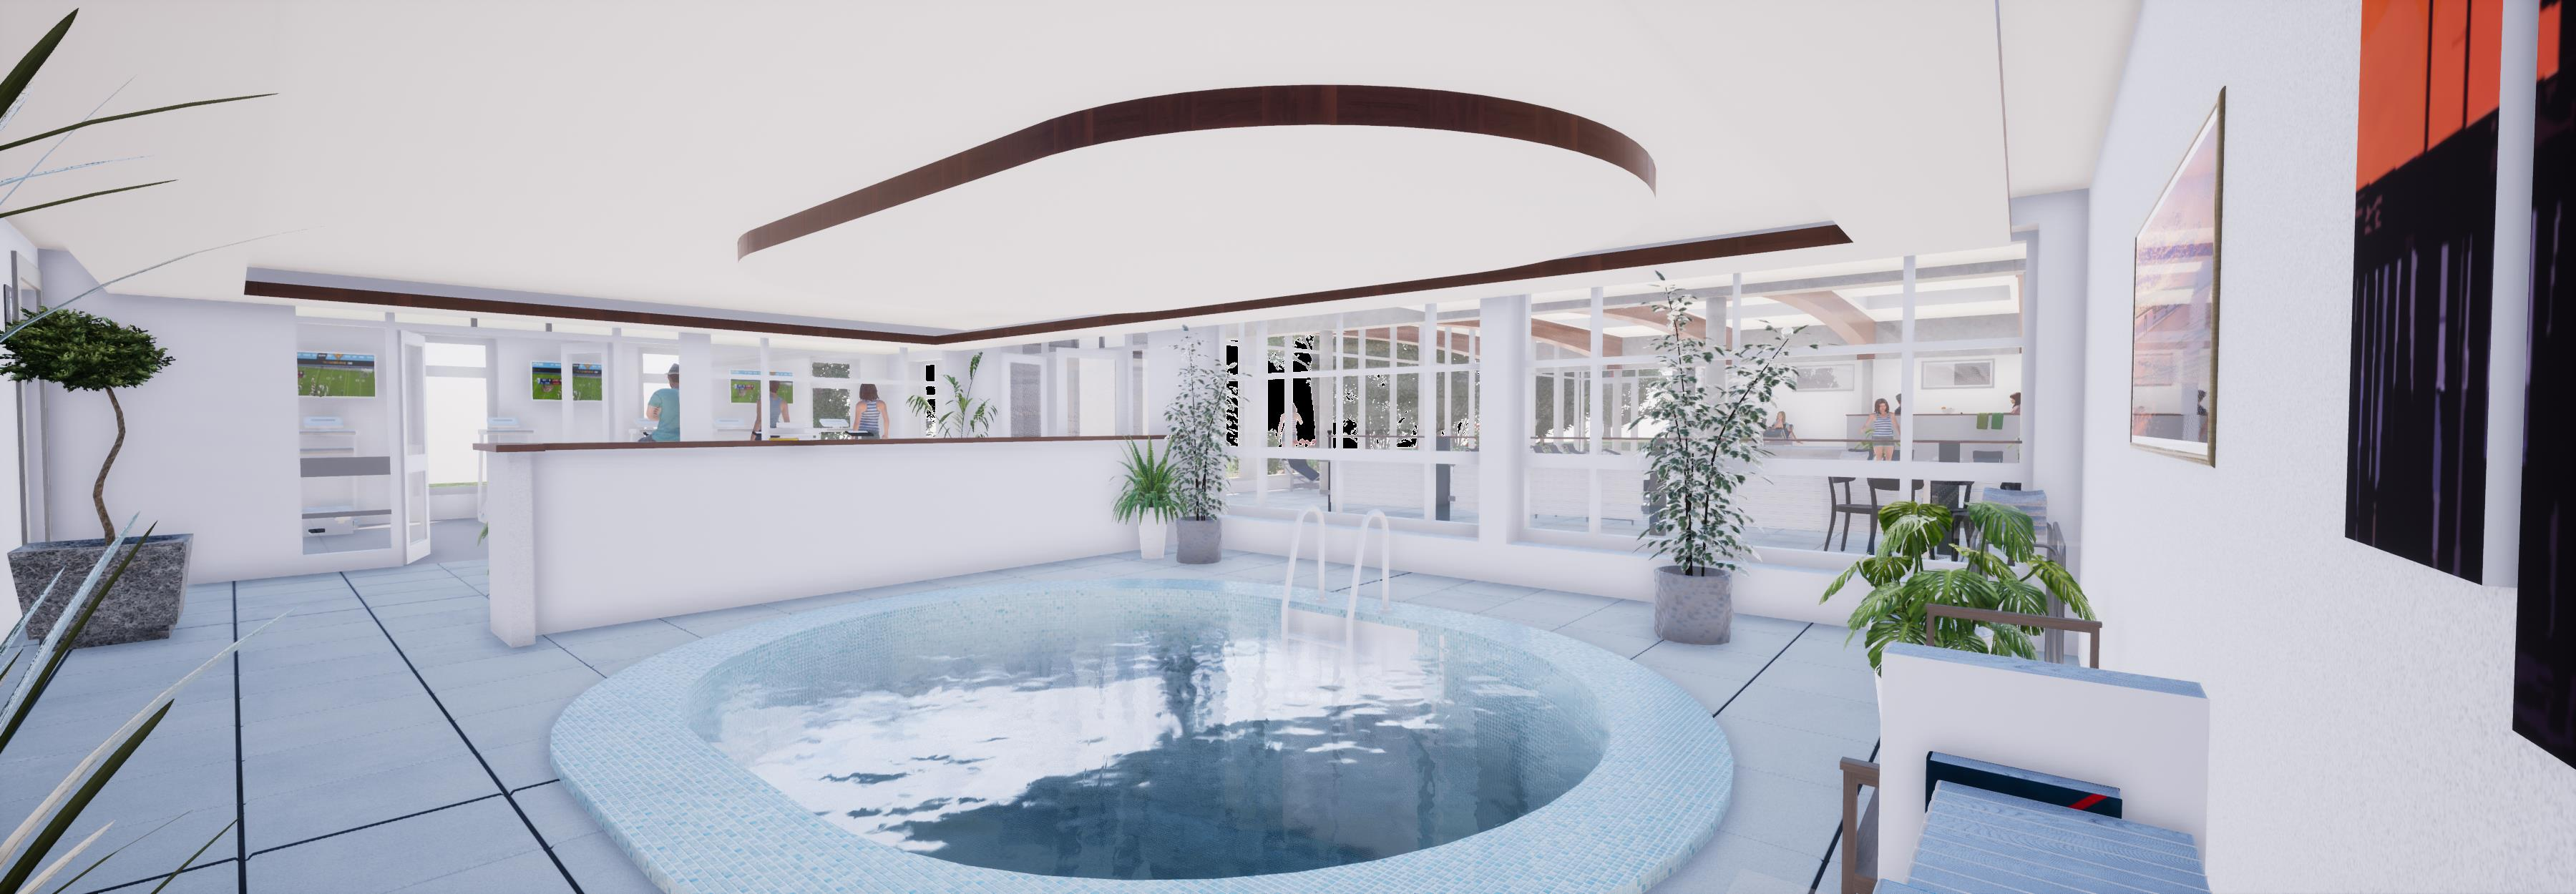 New Pool & Spa Facility Building